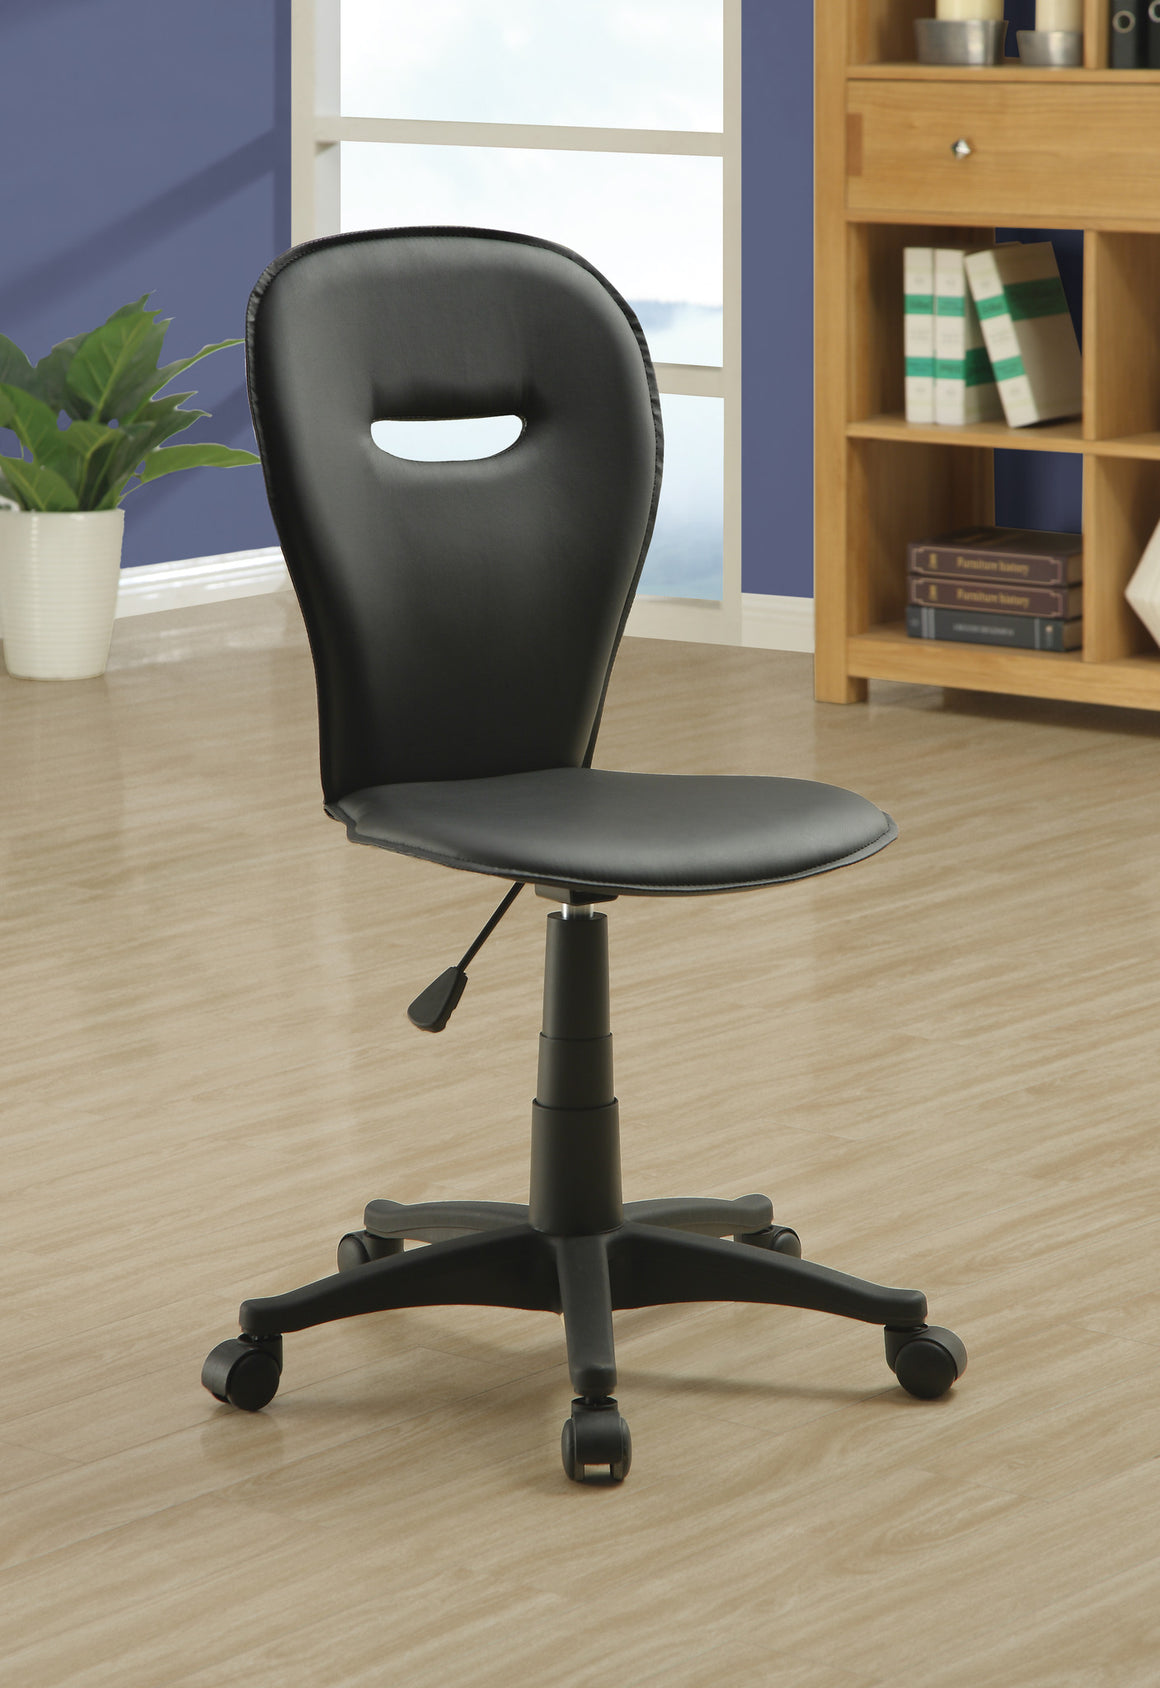 Black Leather-look Fabric Casual Office Chair - TheOfficeFurnitureDepot